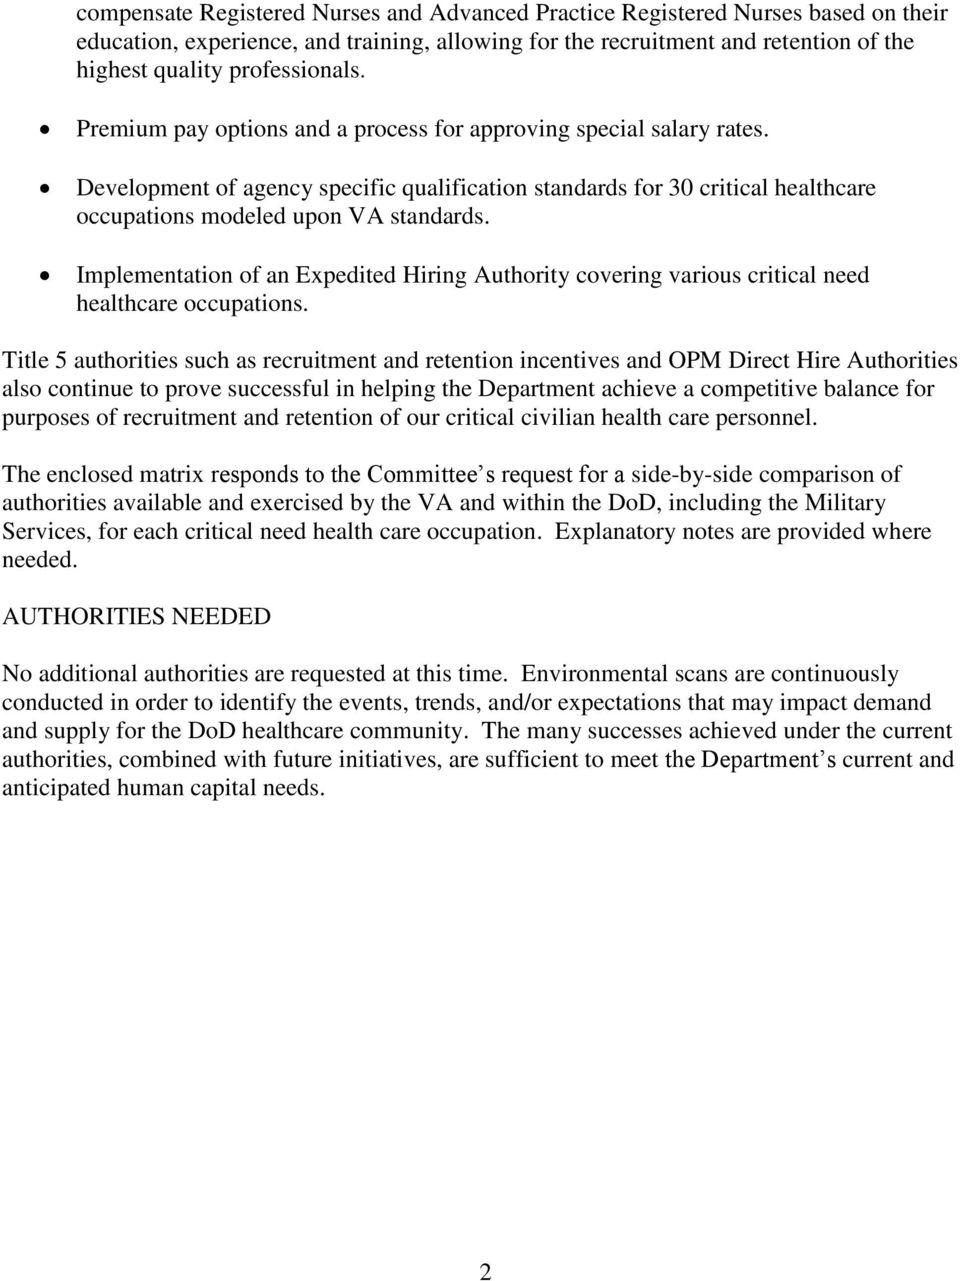 Development of agency specific qualification standards for 30 critical healthcare occupations modeled upon VA standards.